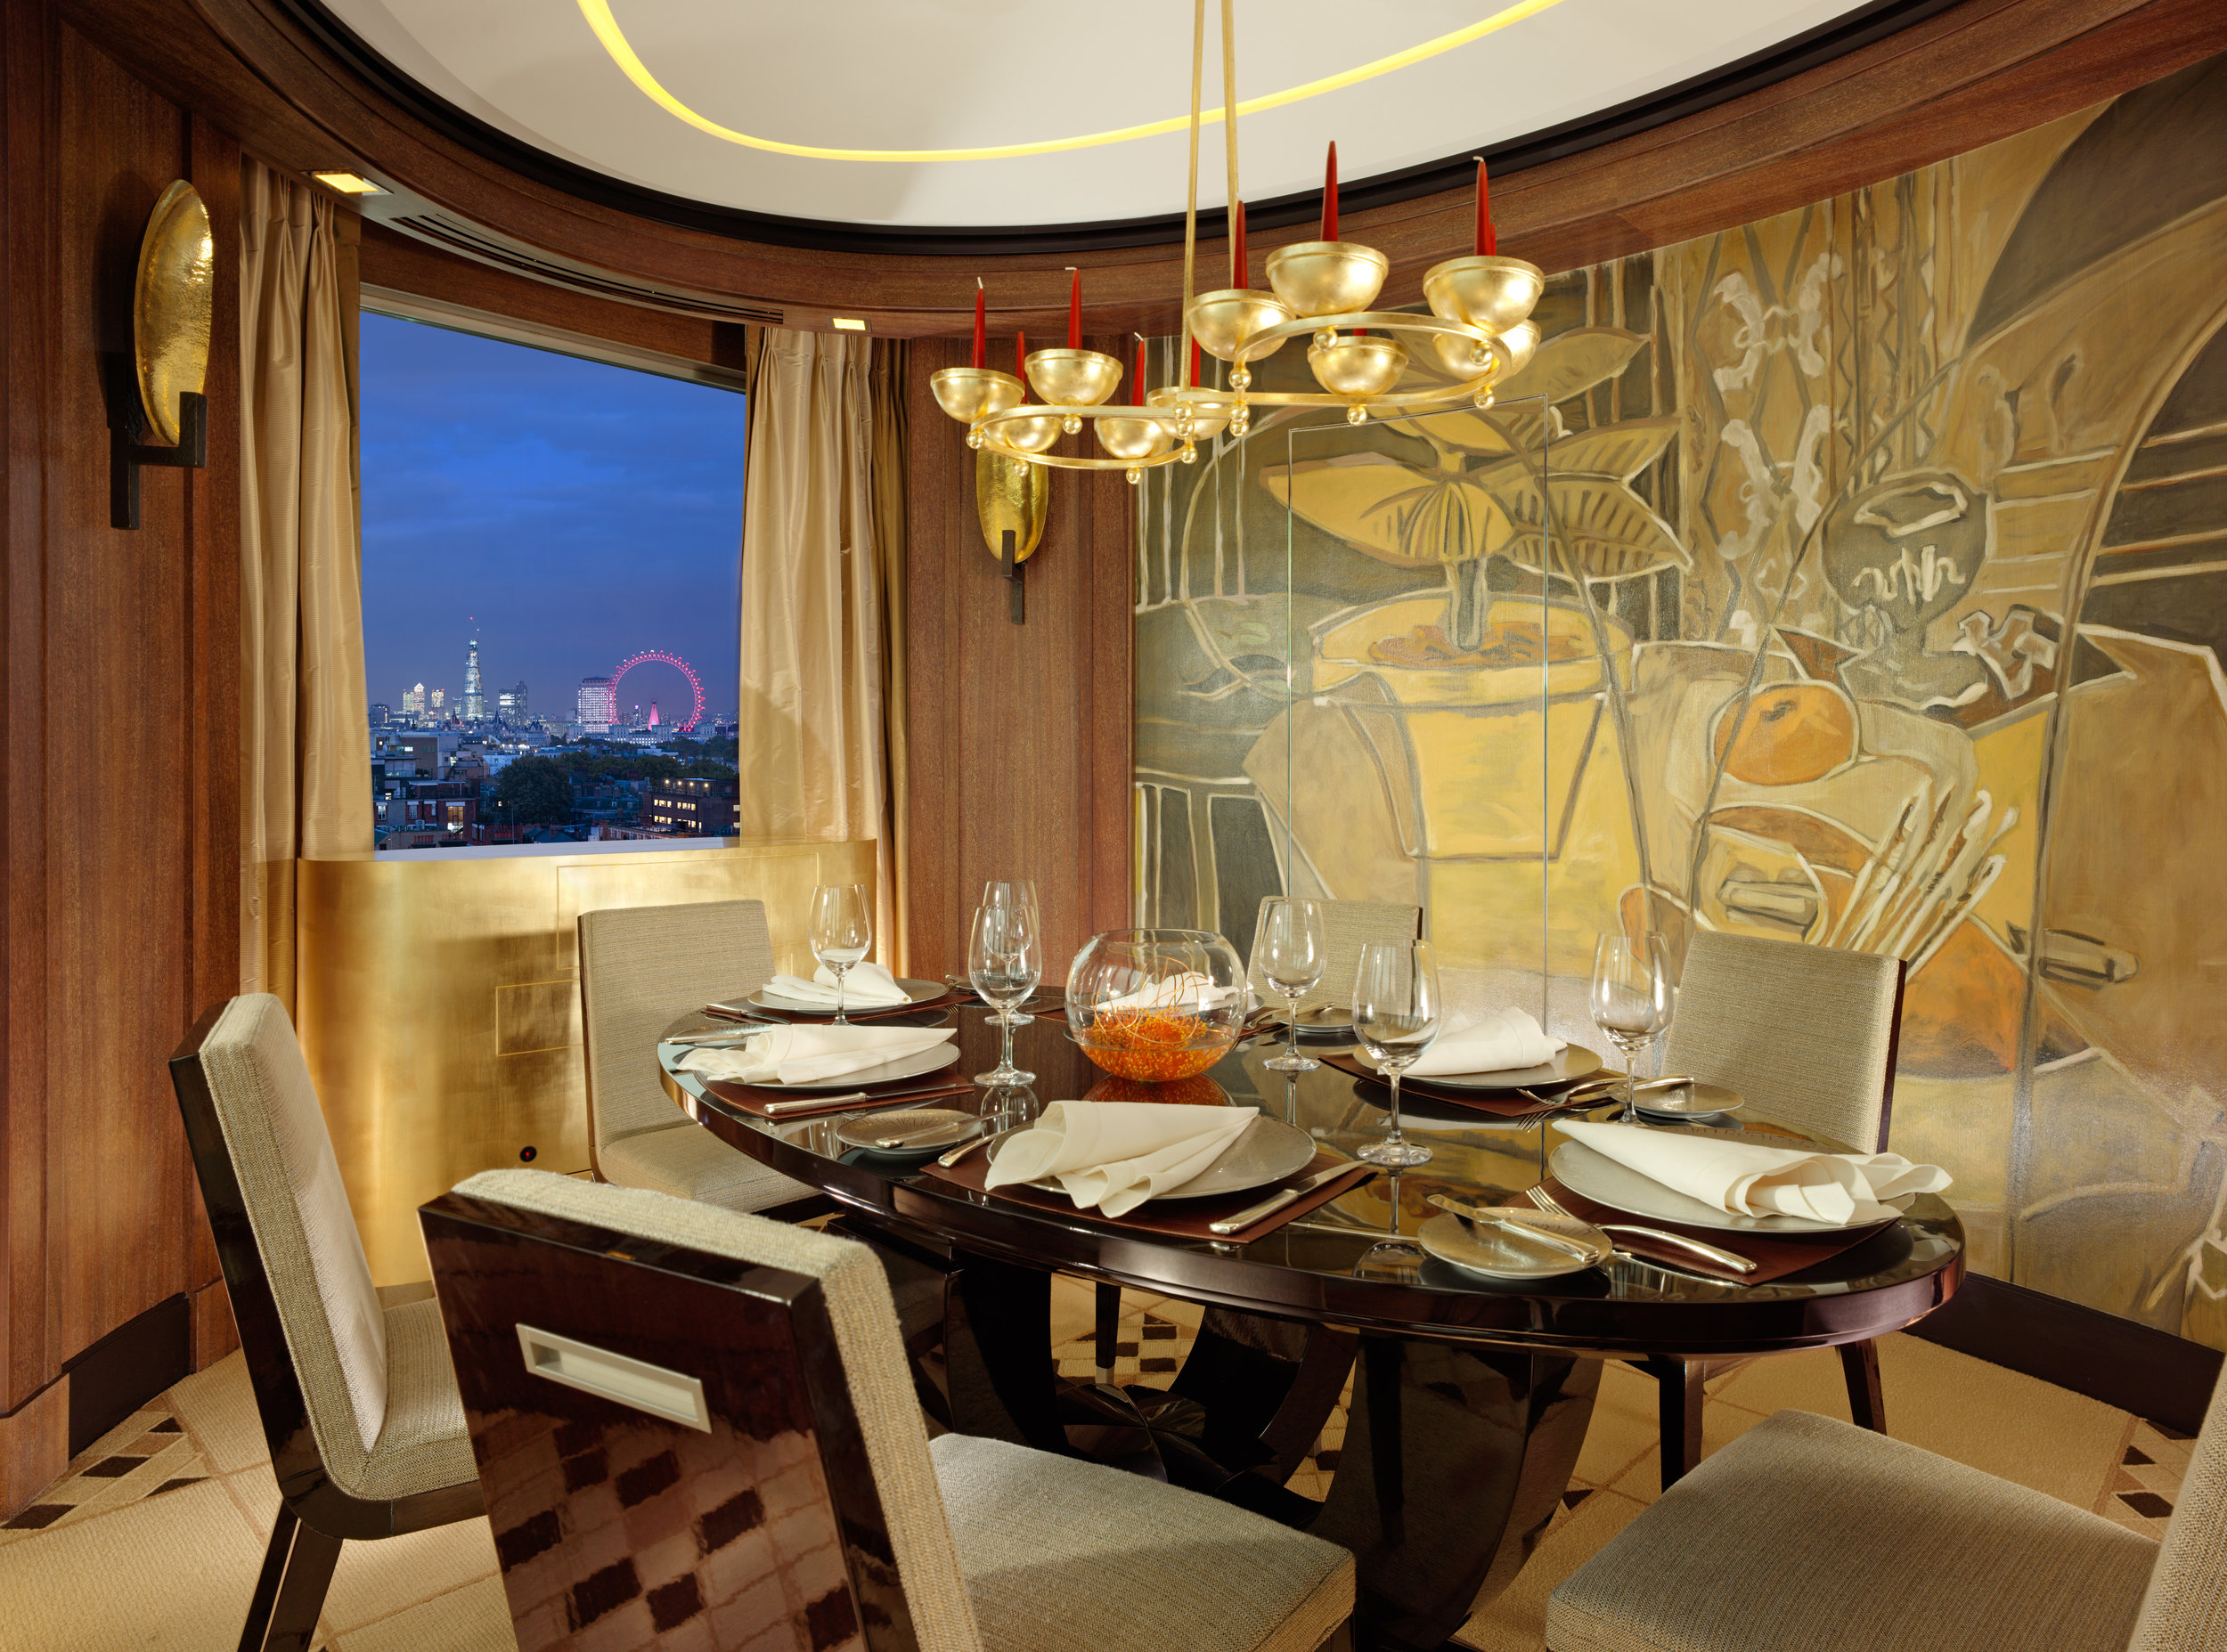 Penthouse, Dining Room table set - 45 Park Lane 1196-2a.jpg